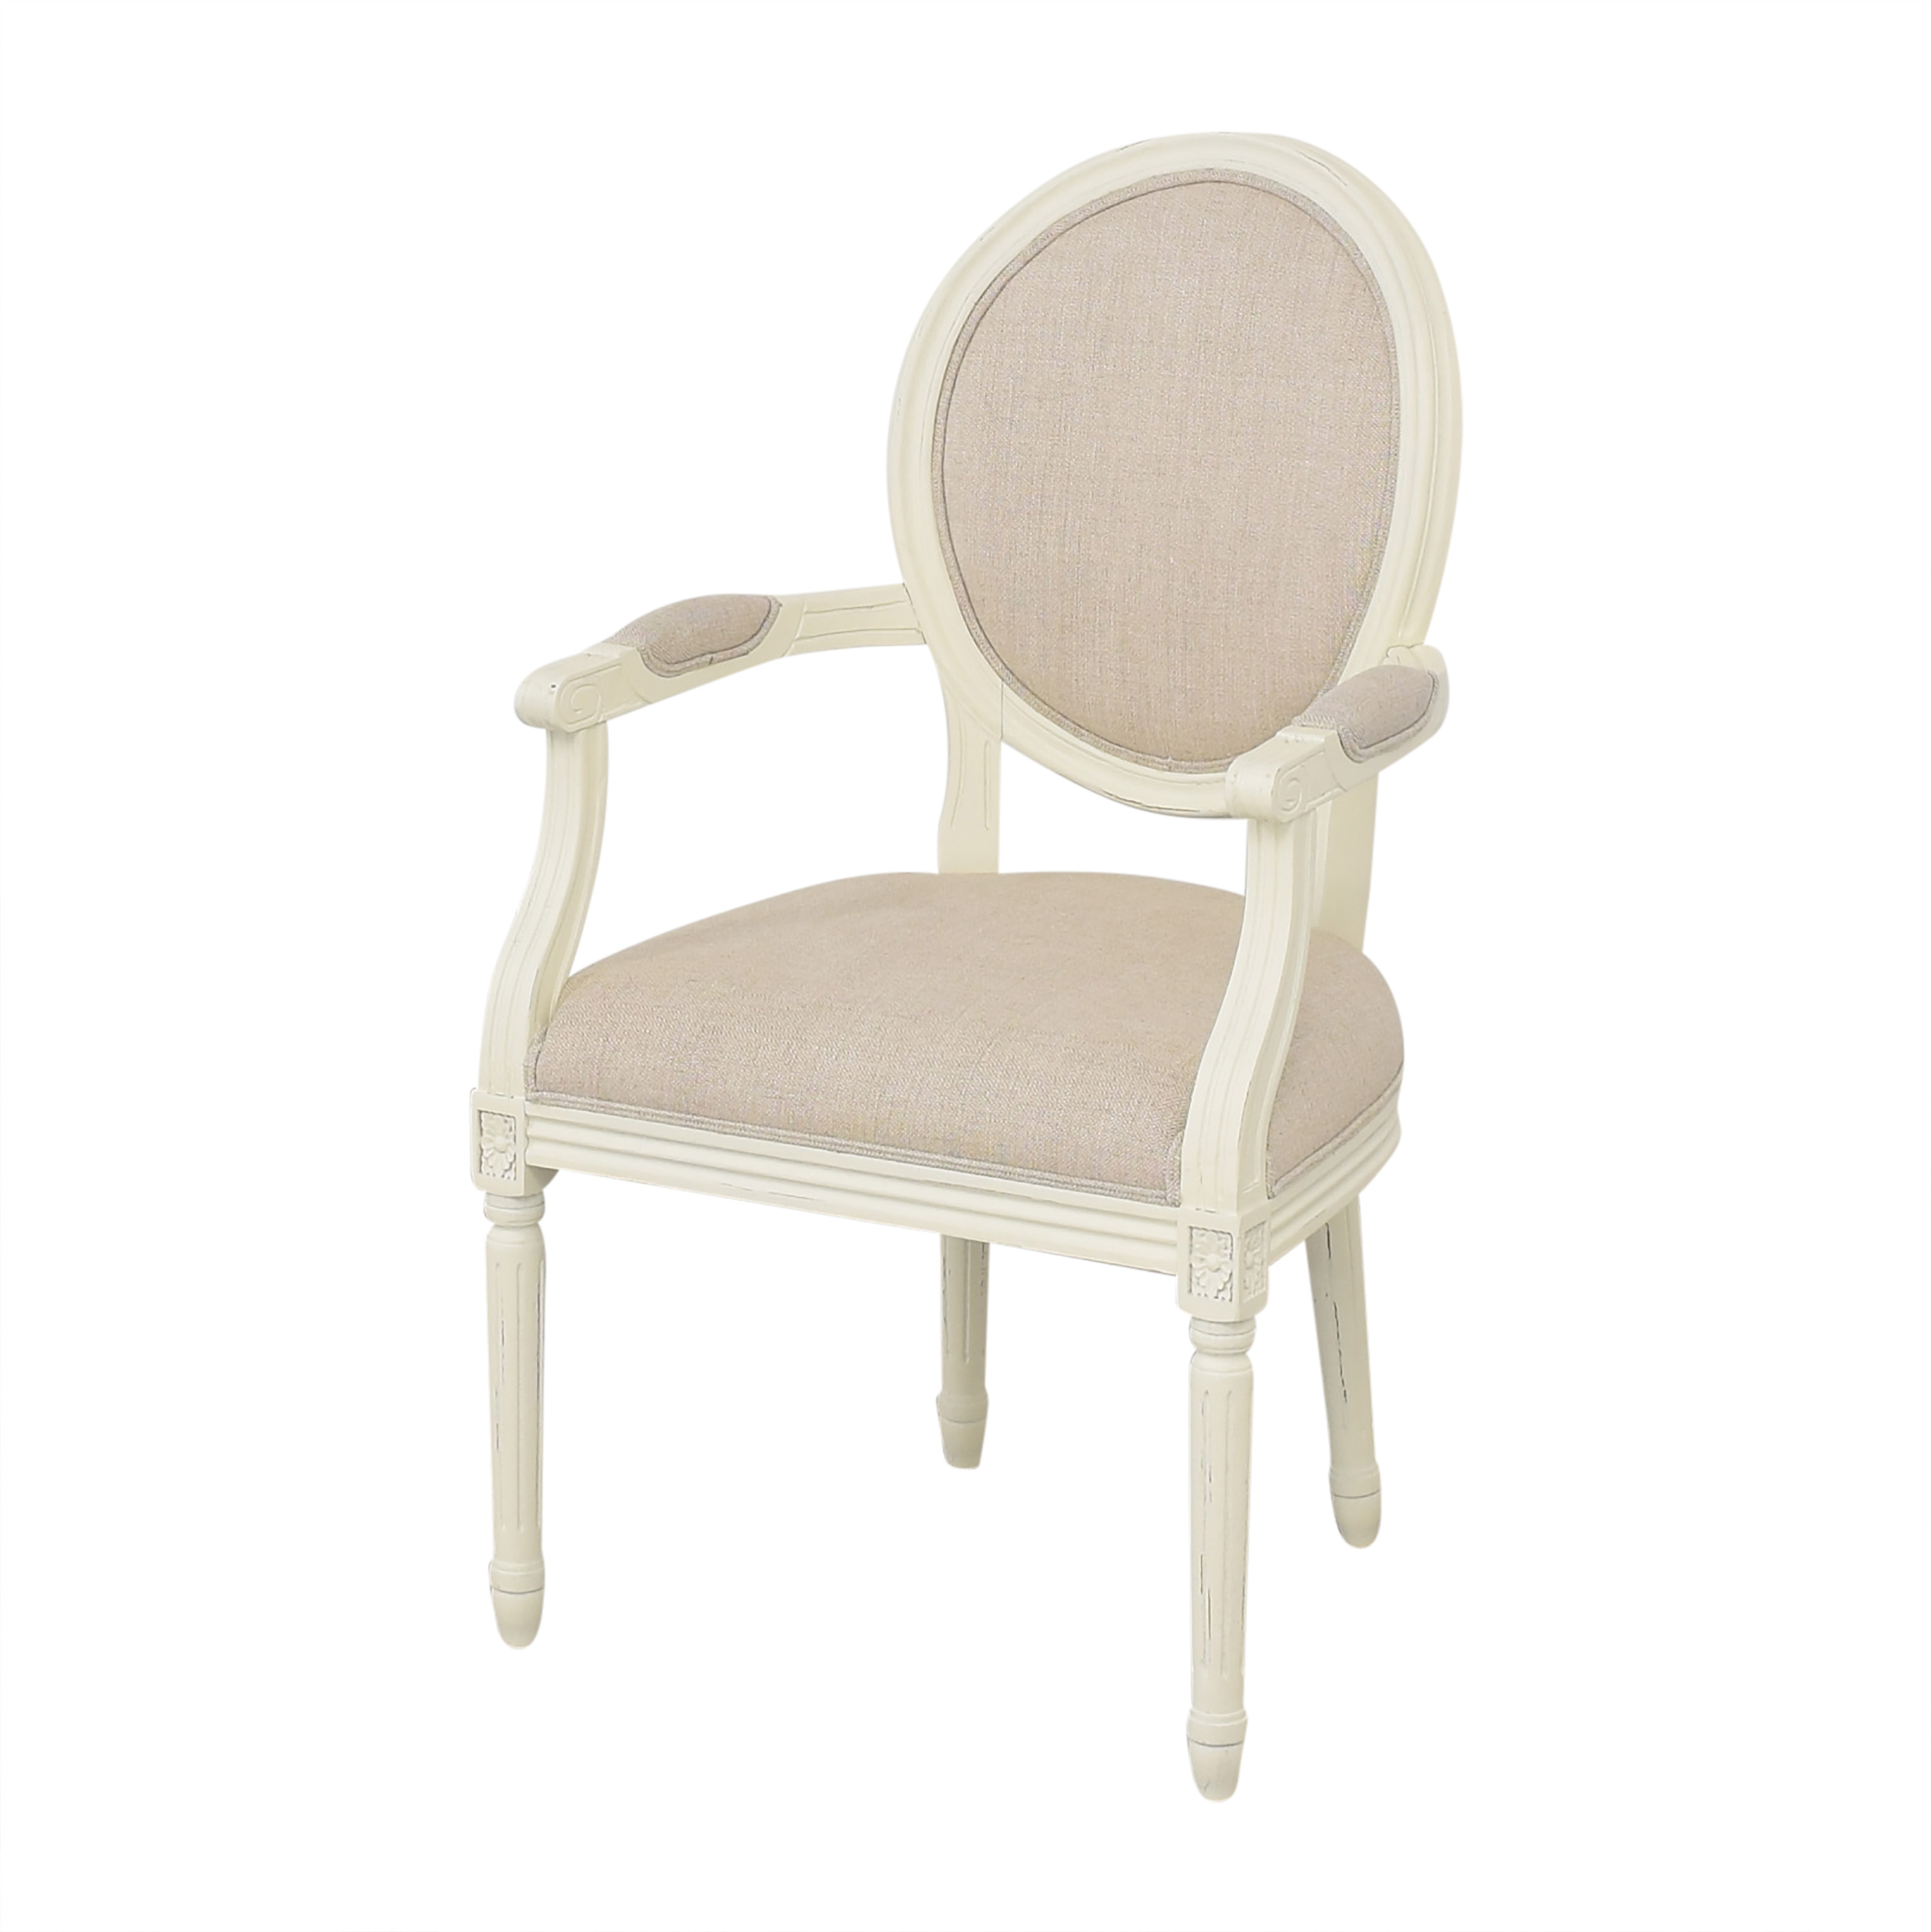 Restoration Hardware Vintage French Round Armchairs / Dining Chairs